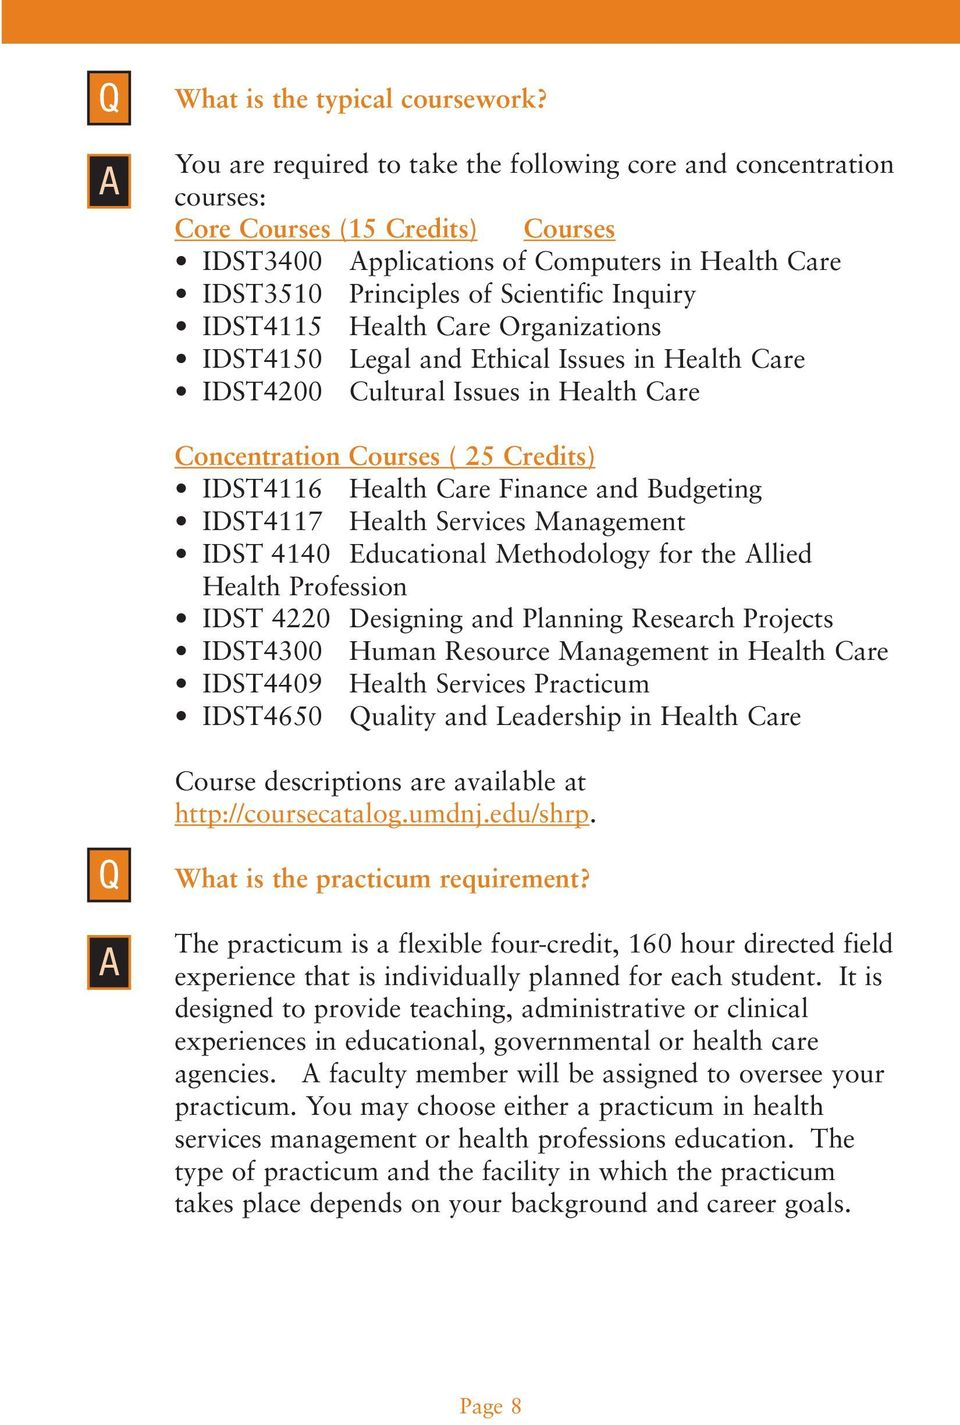 IDST4115 Health Care Organizations IDST4150 Legal and Ethical Issues in Health Care IDST4200 Cultural Issues in Health Care Concentration Courses ( 25 Credits) IDST4116 Health Care Finance and